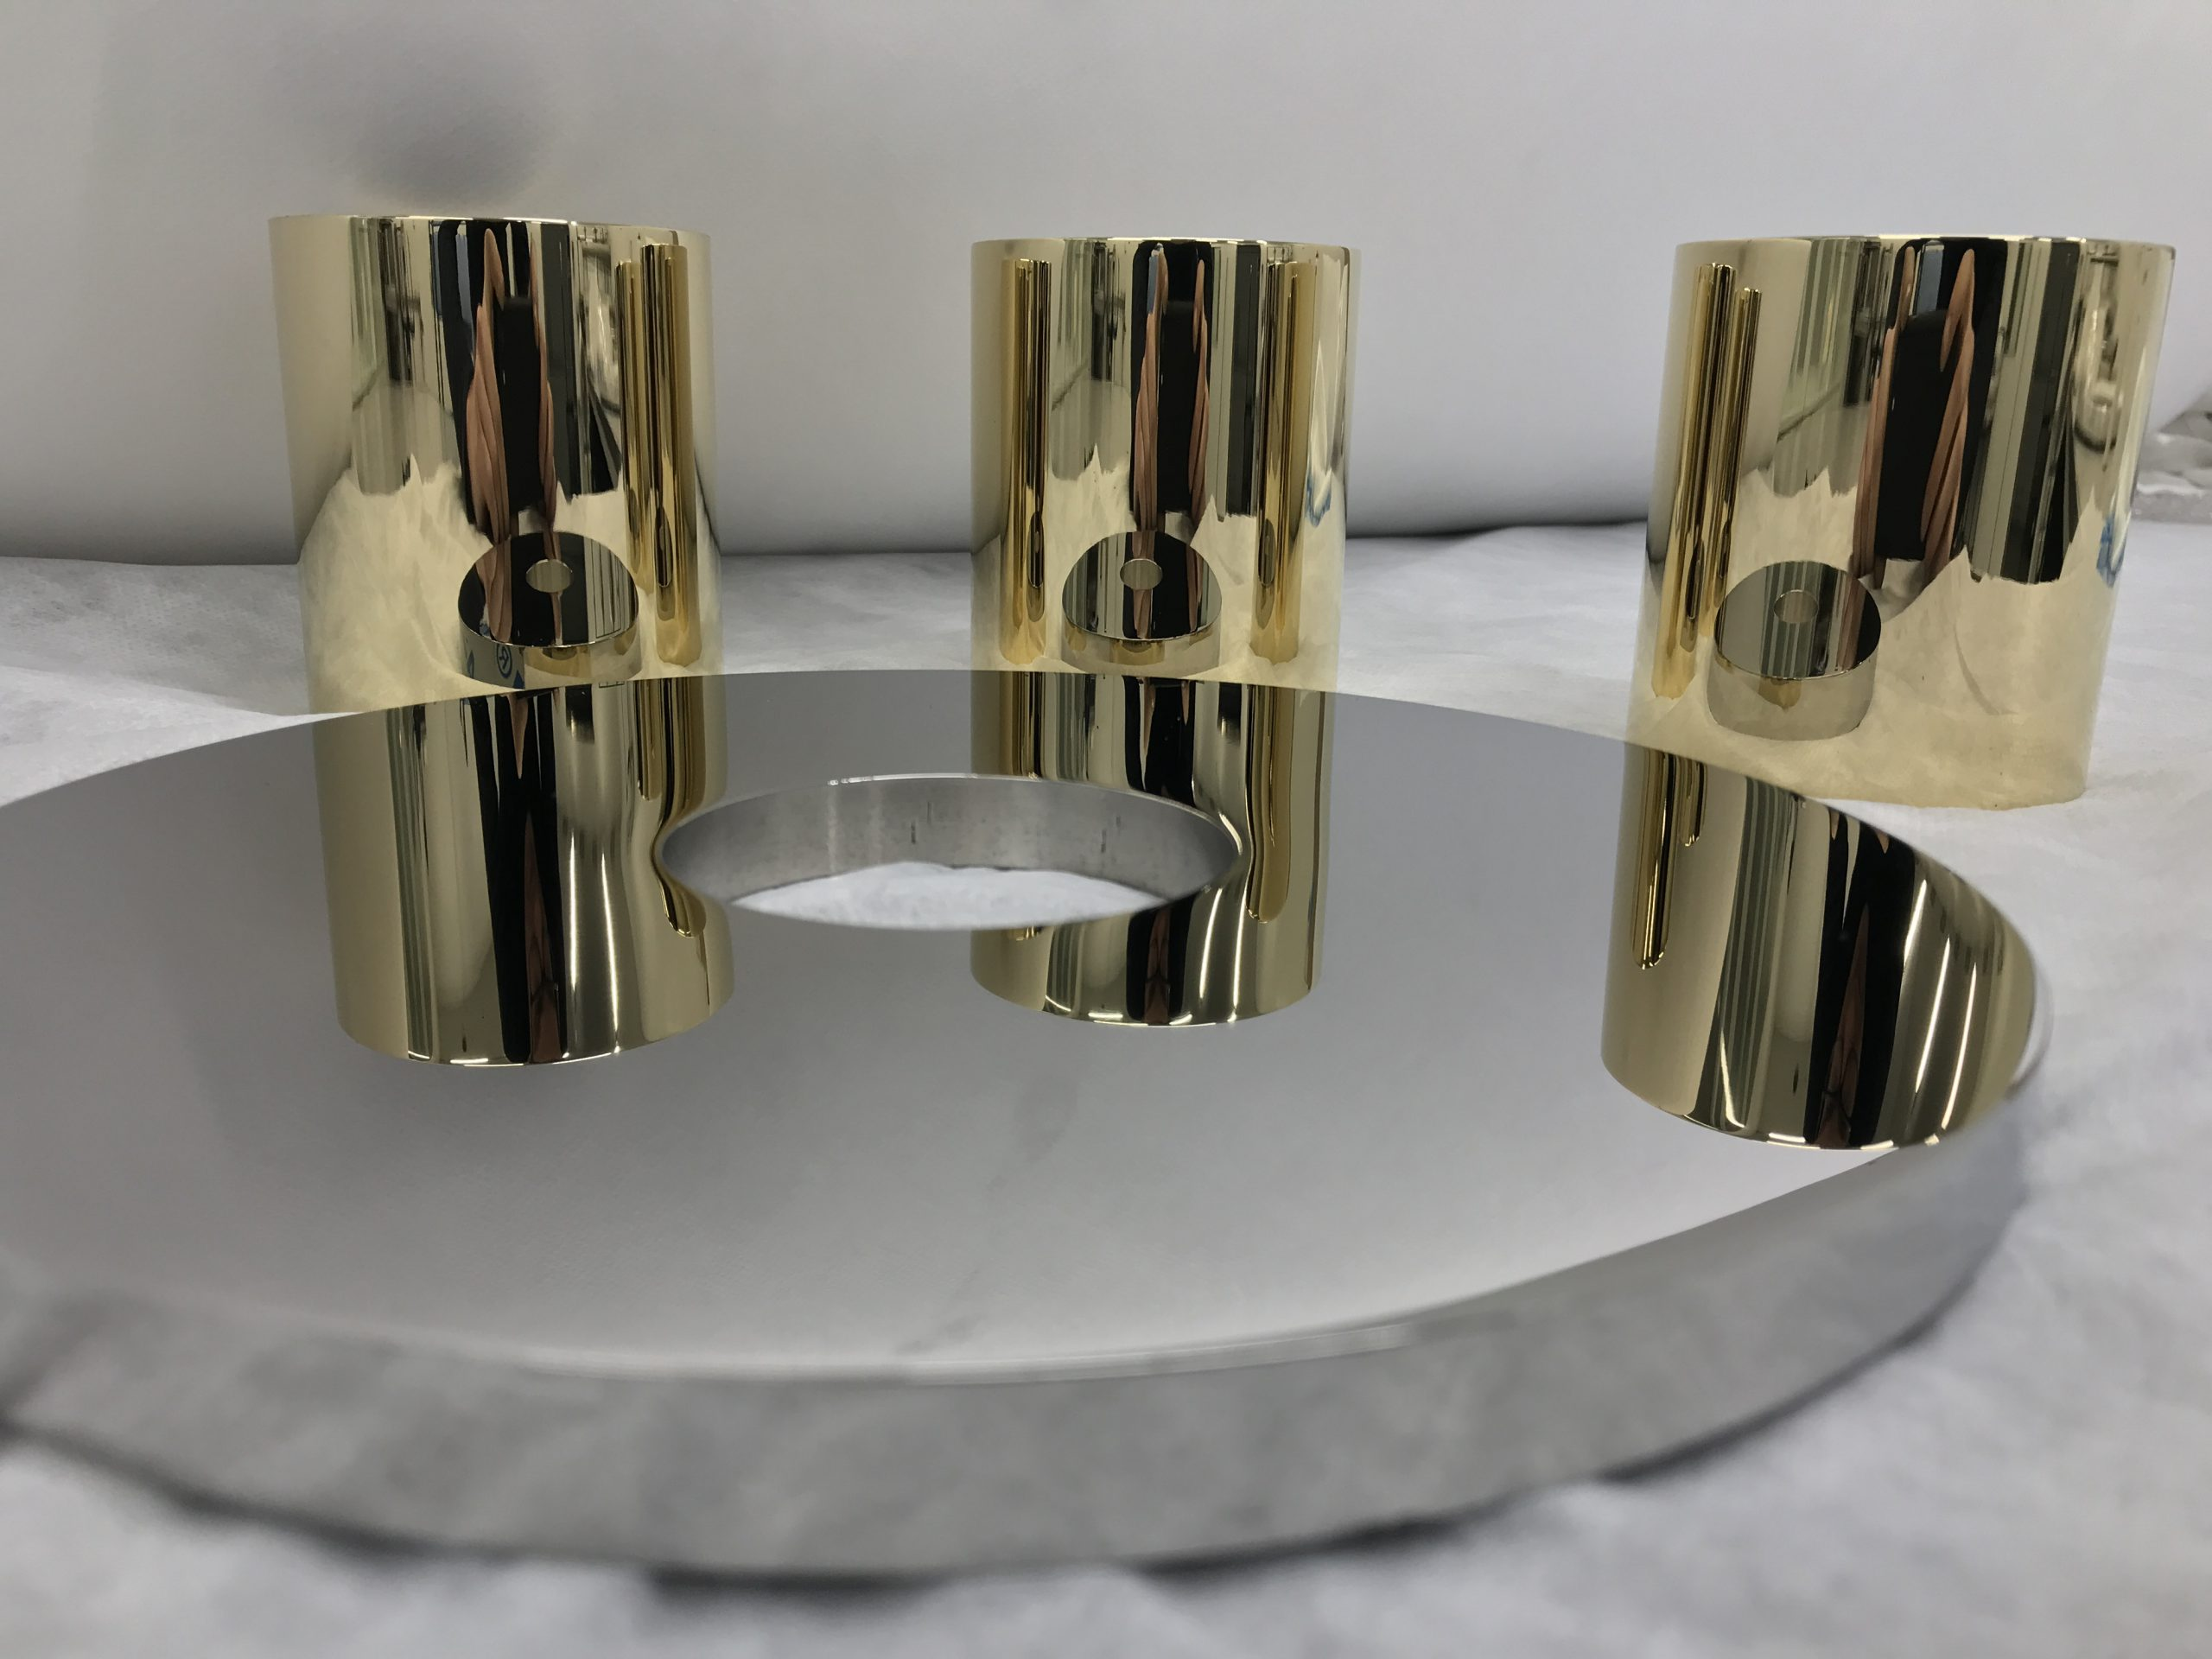 brass and stainless steel high-gloss polished